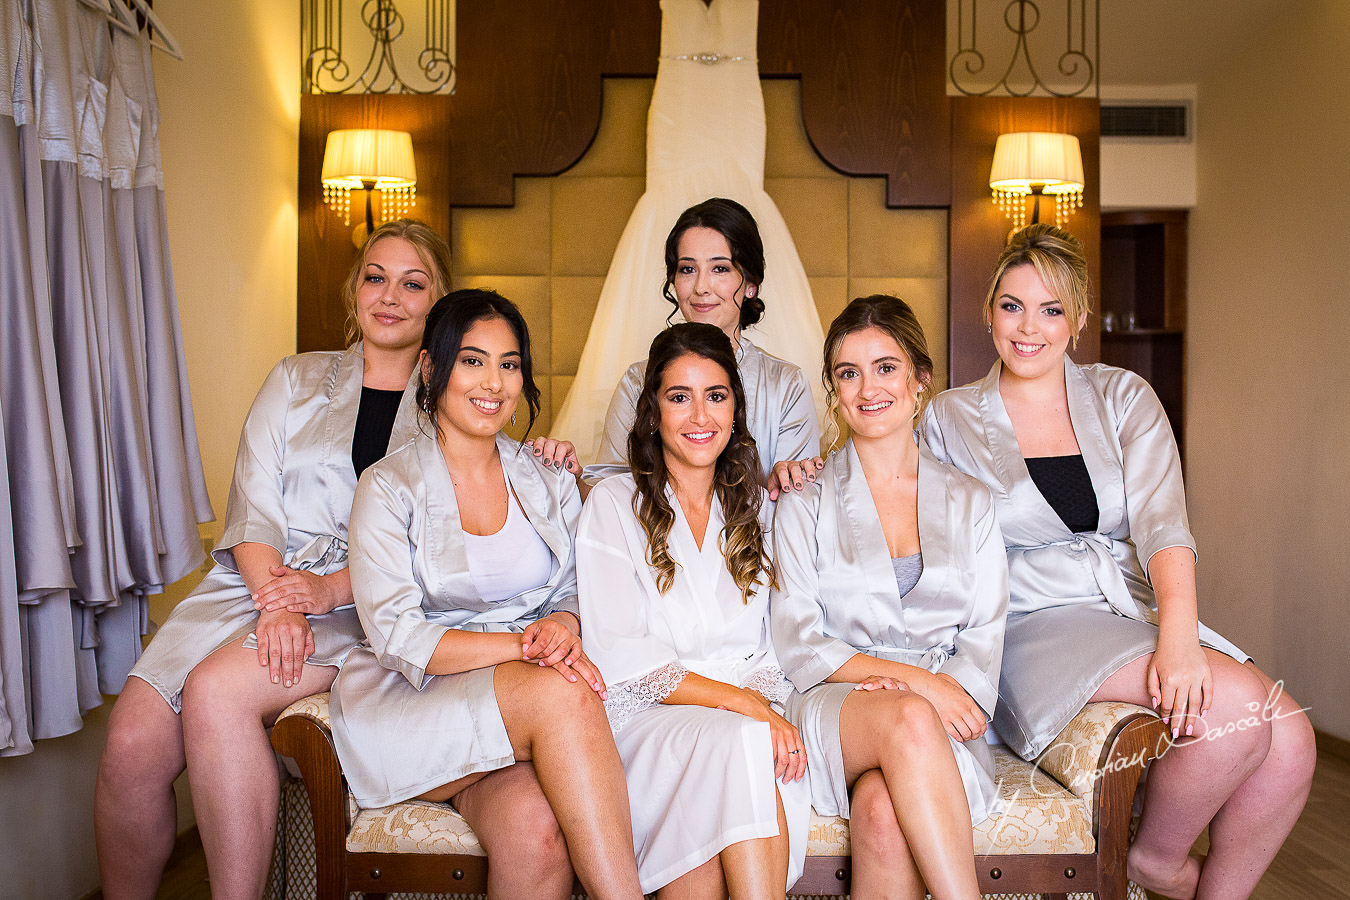 Bride and Bridal Party during a Beautiful Wedding at Elias Beach Hotel captured by Cyprus Photographer Cristian Dascalu.